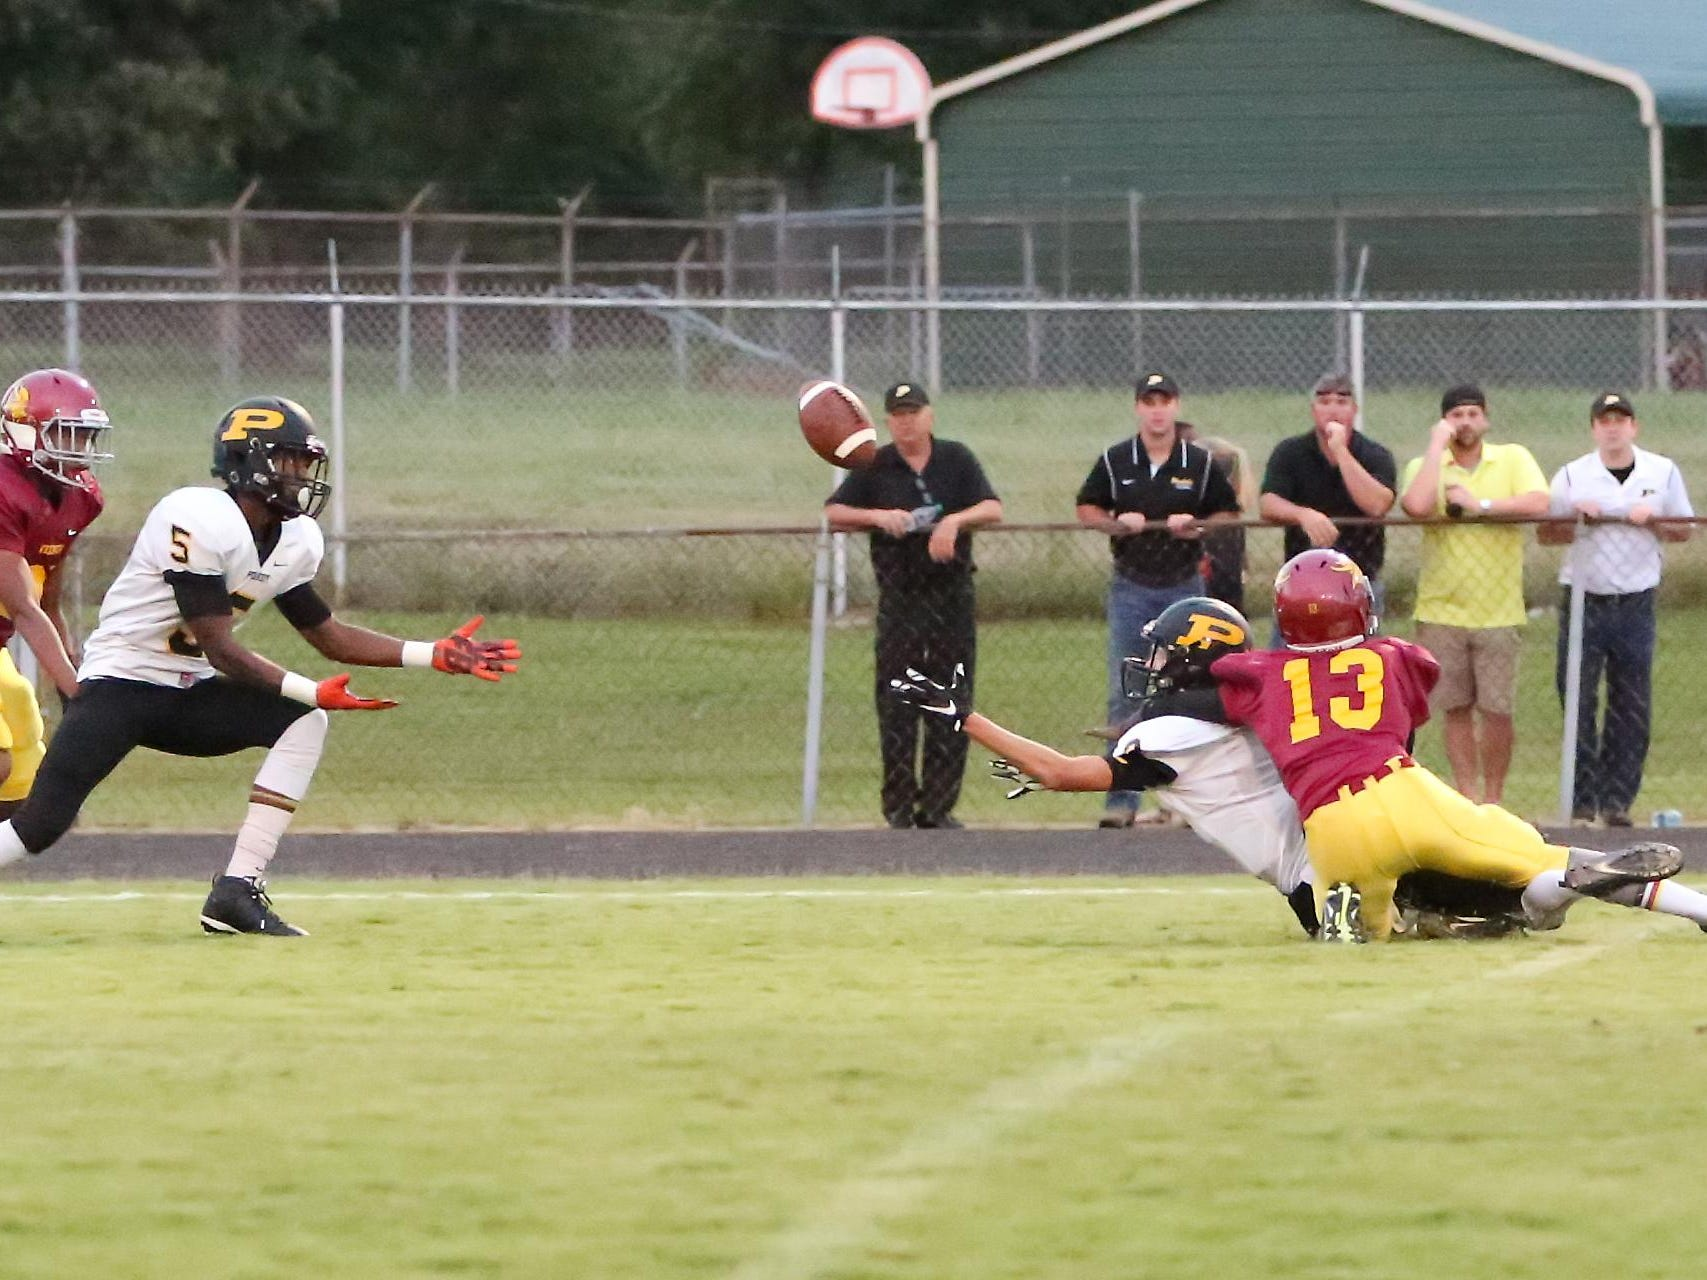 Trenton Peabody receiver Keyvon Goodwin catches the tipped throw for a touchdown Friday night against Humboldt.